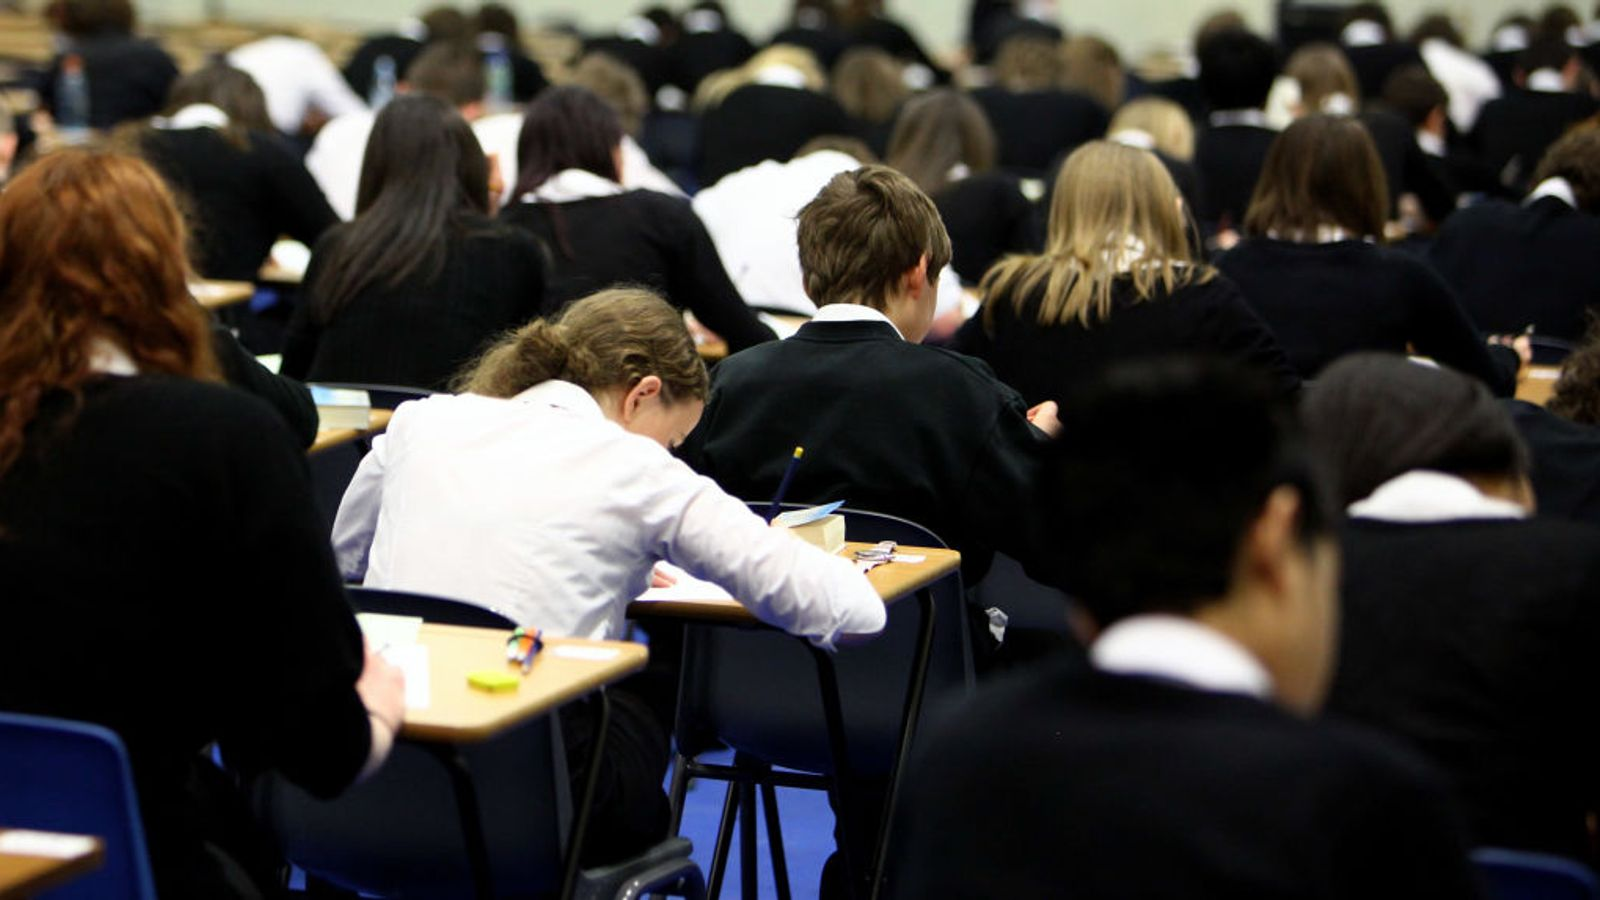 COVID-19: Greenwich schools forced to close as pandemic grows 'exponentially' in London borough